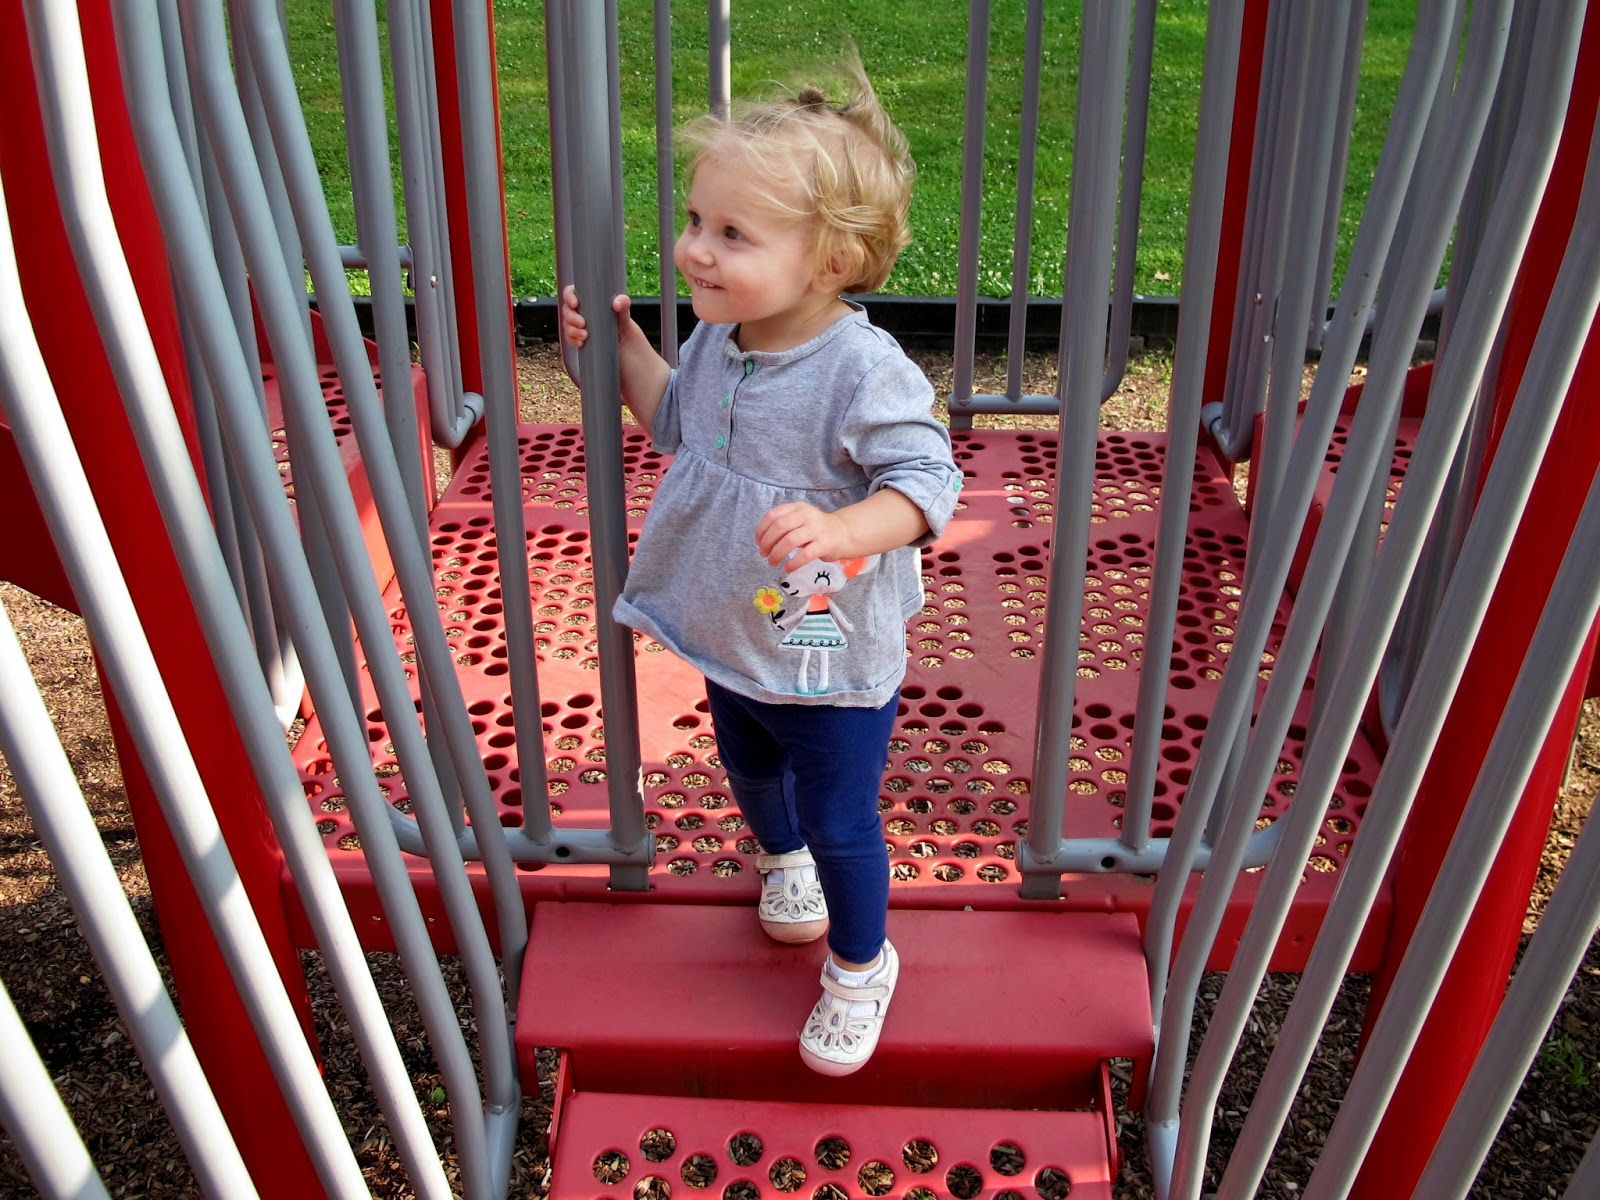 Stella Bella on the Playground